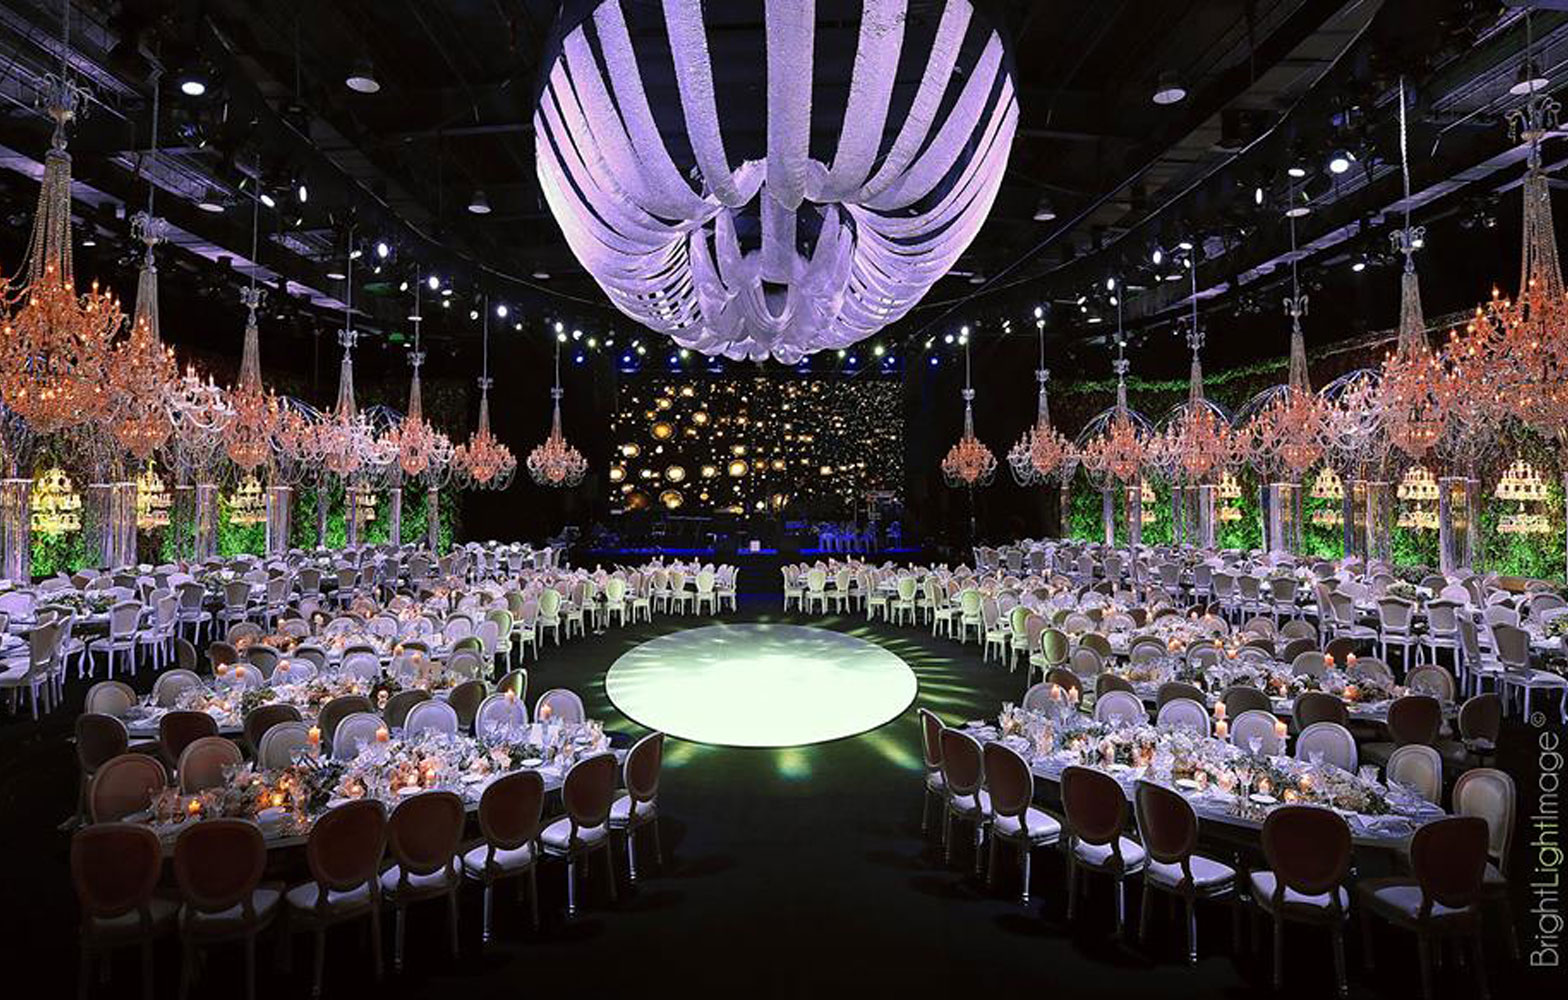 Light Lux - Royal Weddings Projects - Developed By: 4MADSolutions